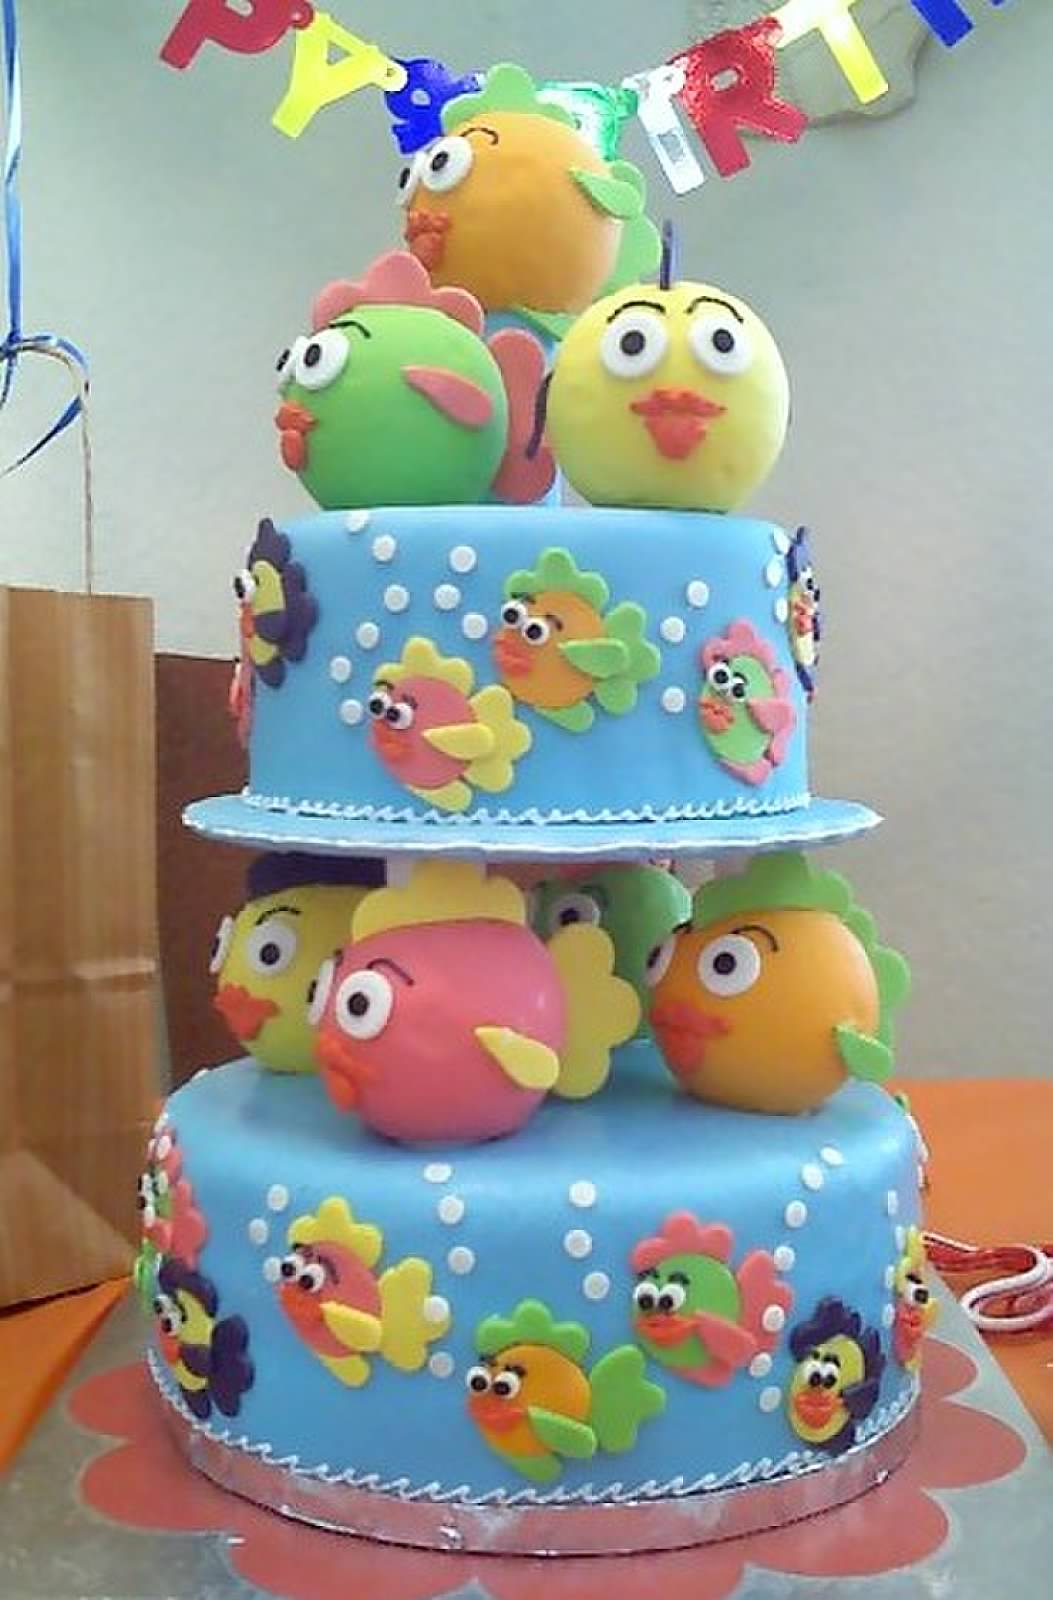 Cake 1 Year Old Birthday : File:Birthday cake for one-year old.jpg - Wikipedia